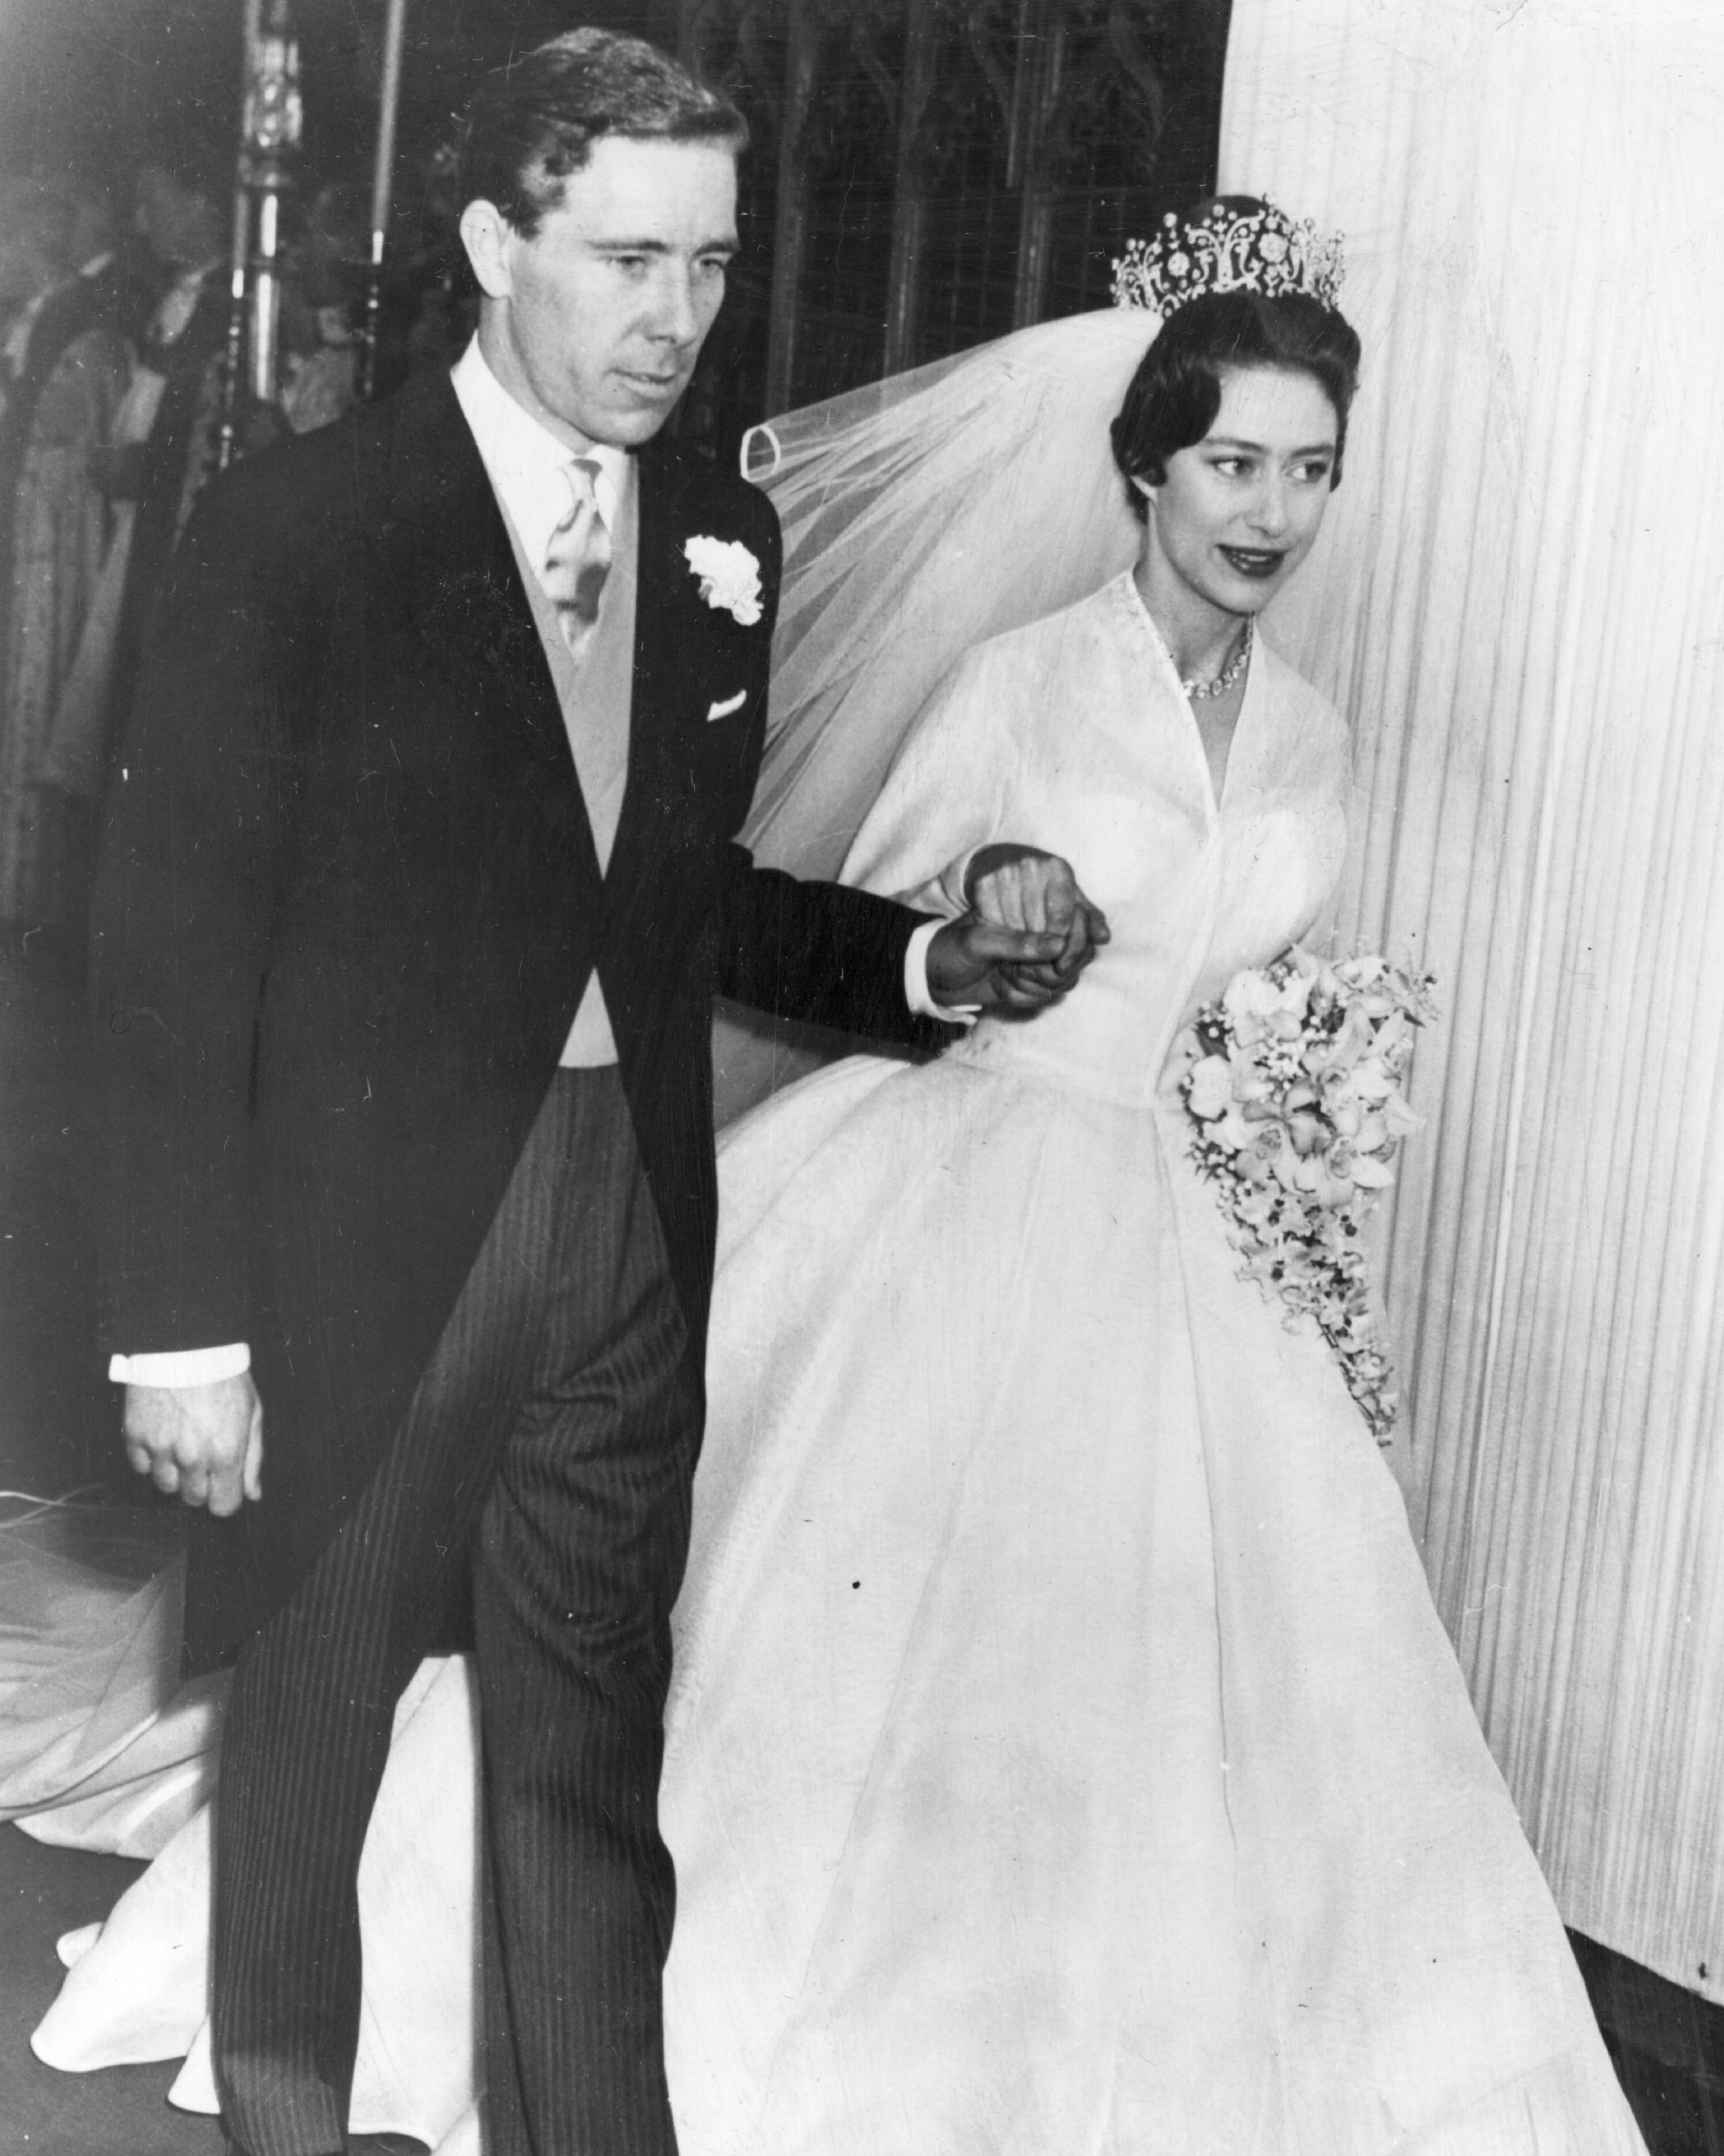 royal-wedding-dress-princess-margaret-3289962-1115.jpg